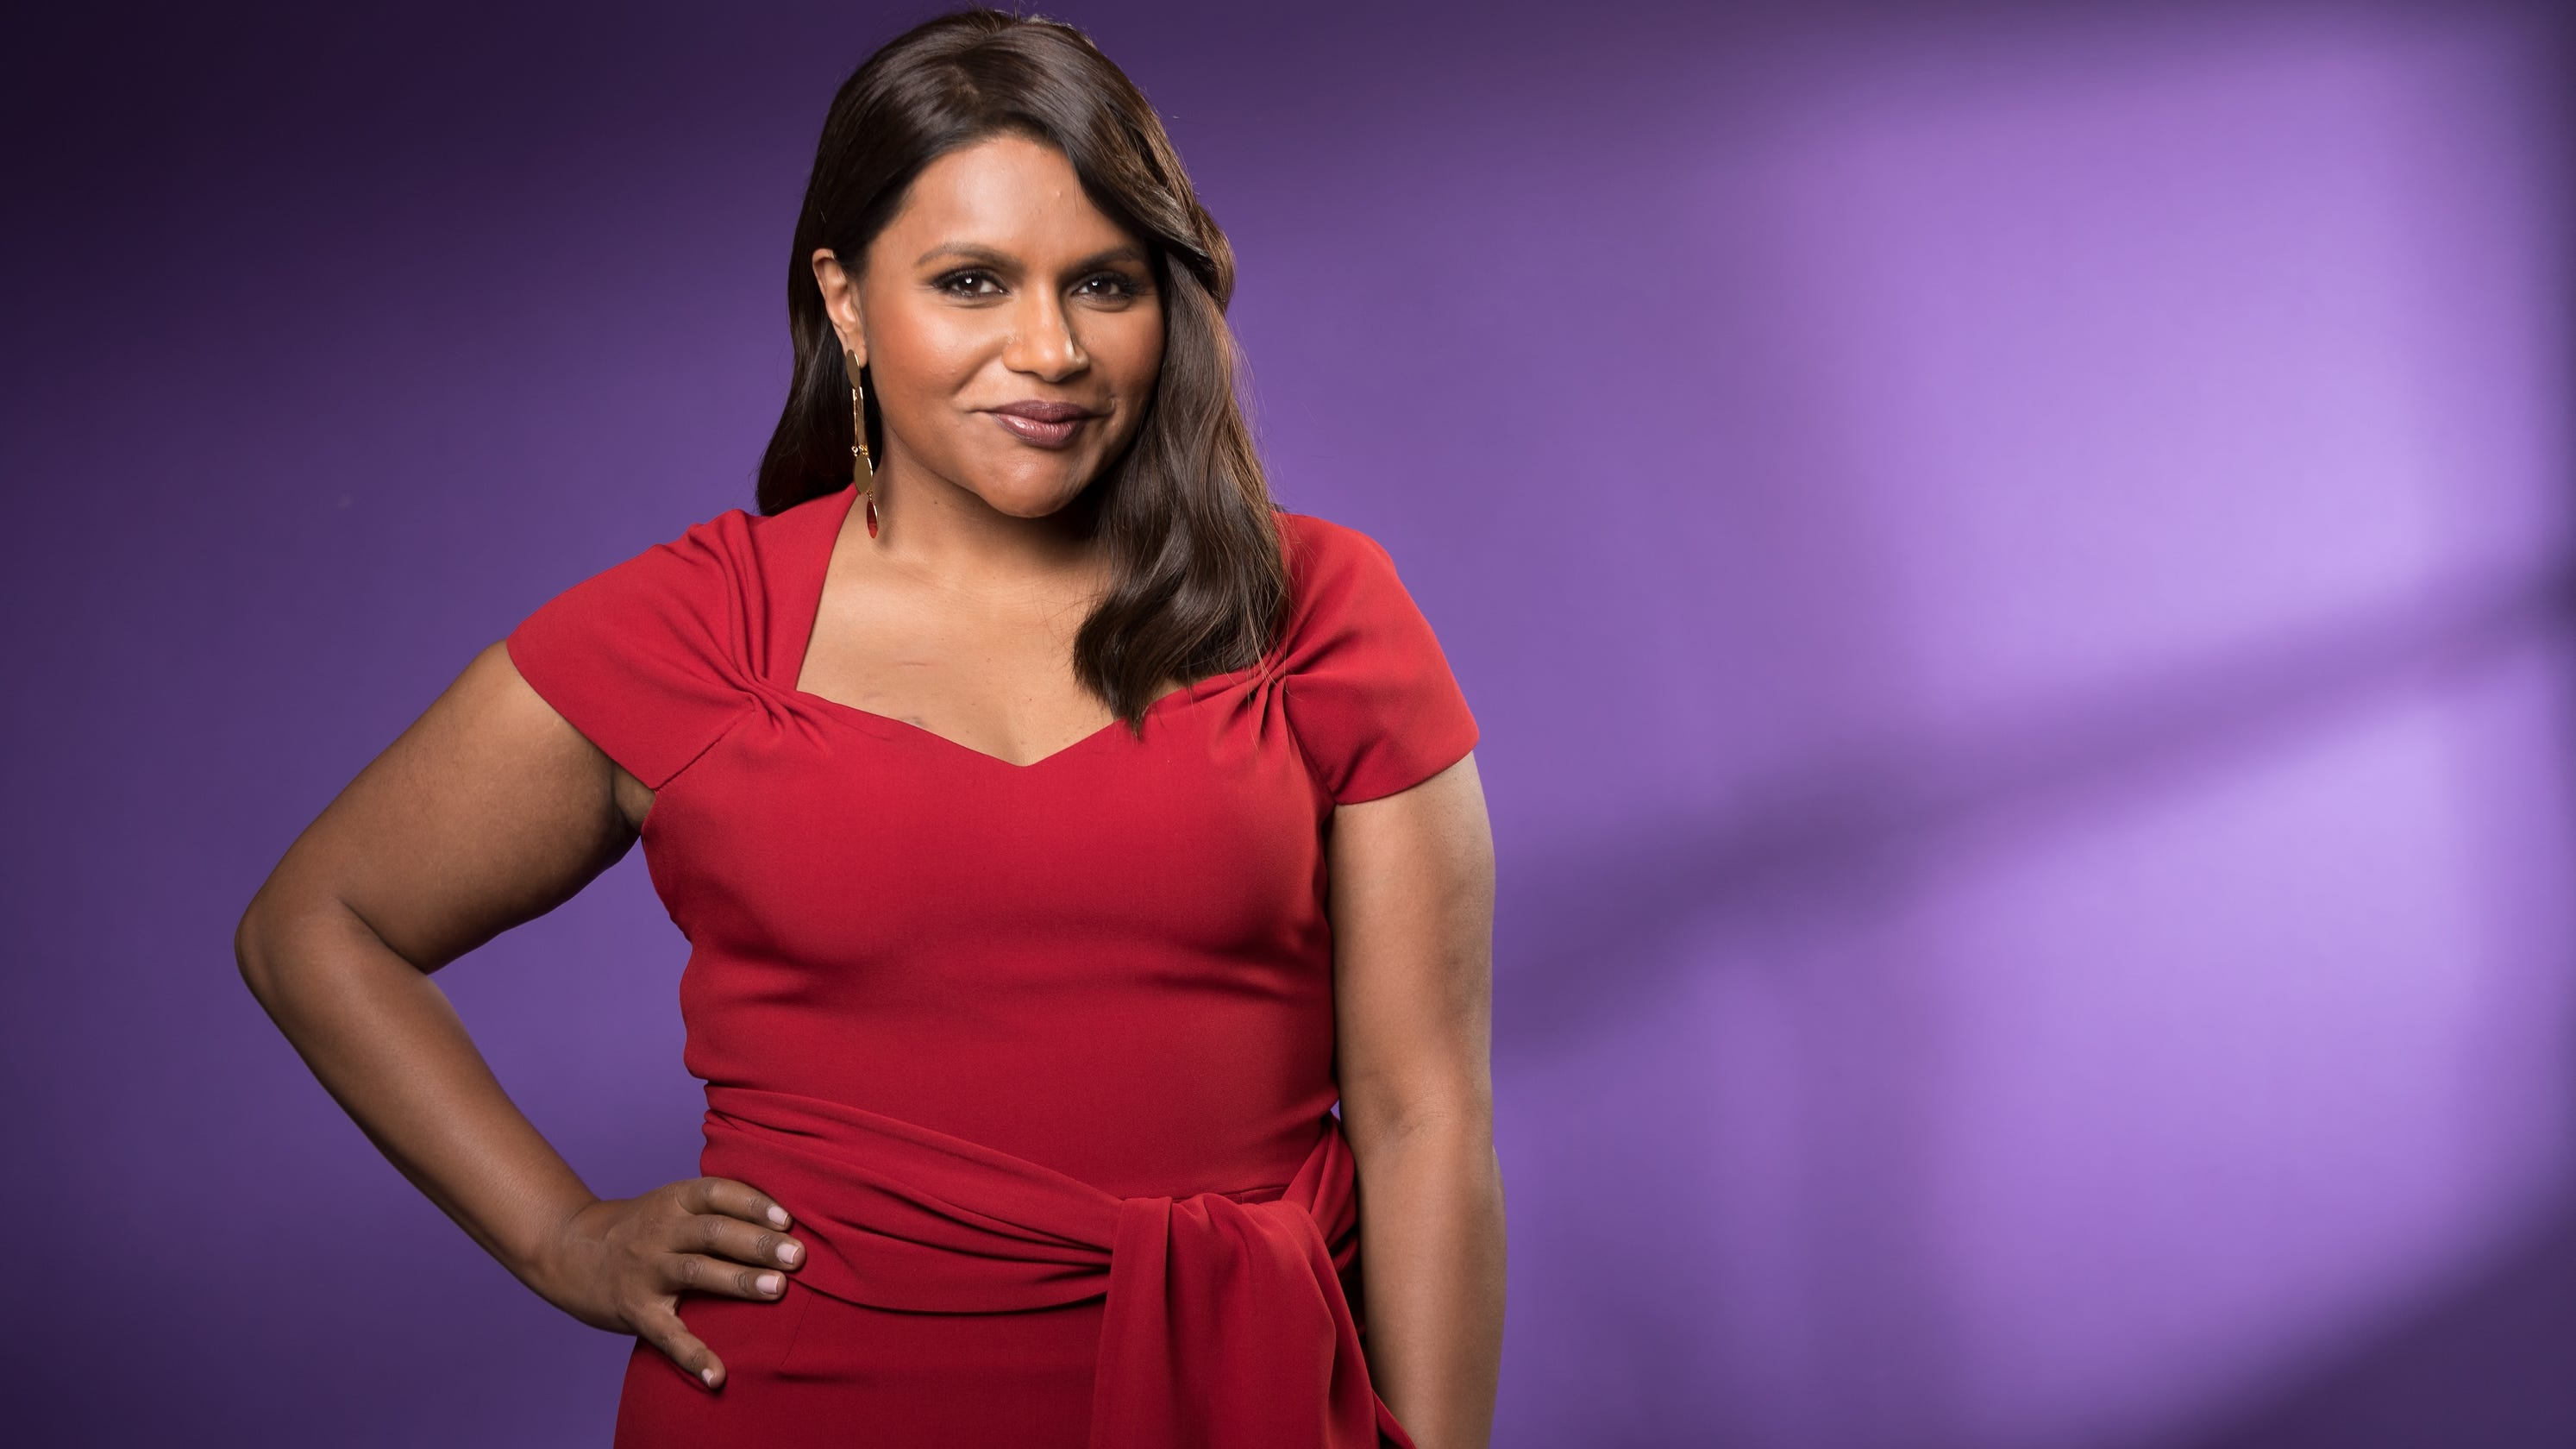 Mindy Kaling has 'newfound respect for stay-at-home moms' while quarantining with her toddler